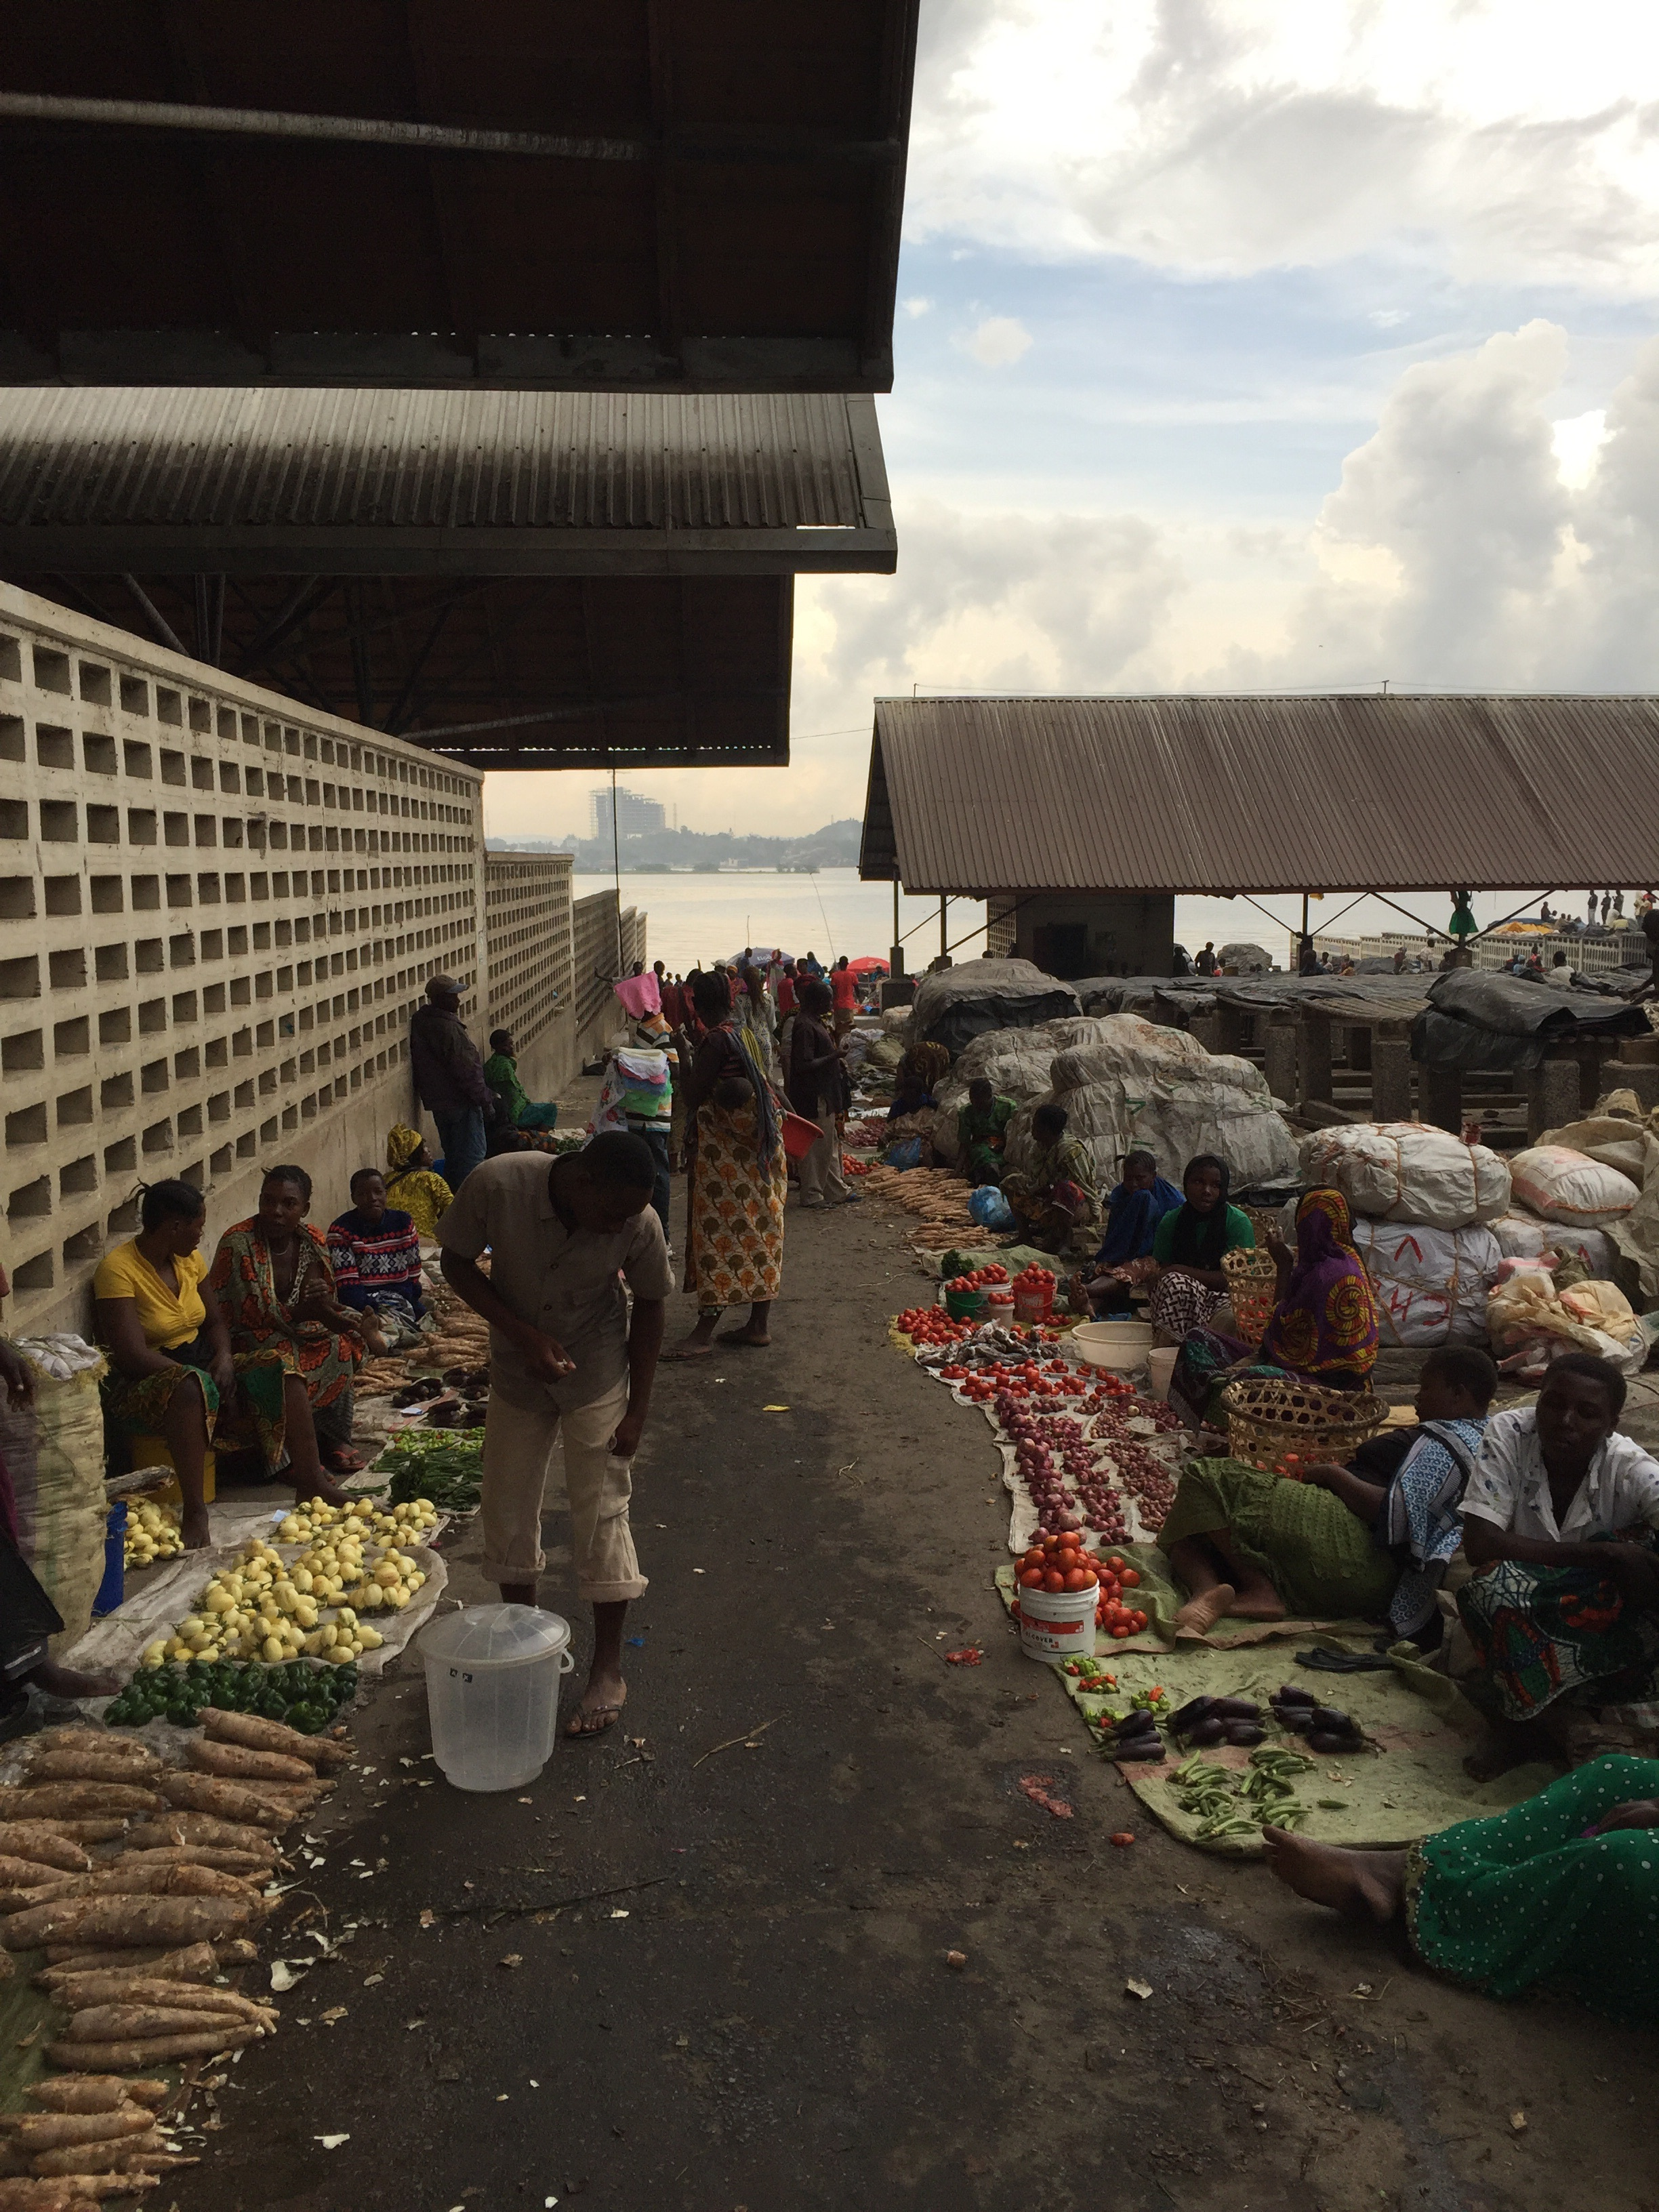 Fish market. No fish, right? The majority of the fish are small, bundled in potato sacks and sold as feed.